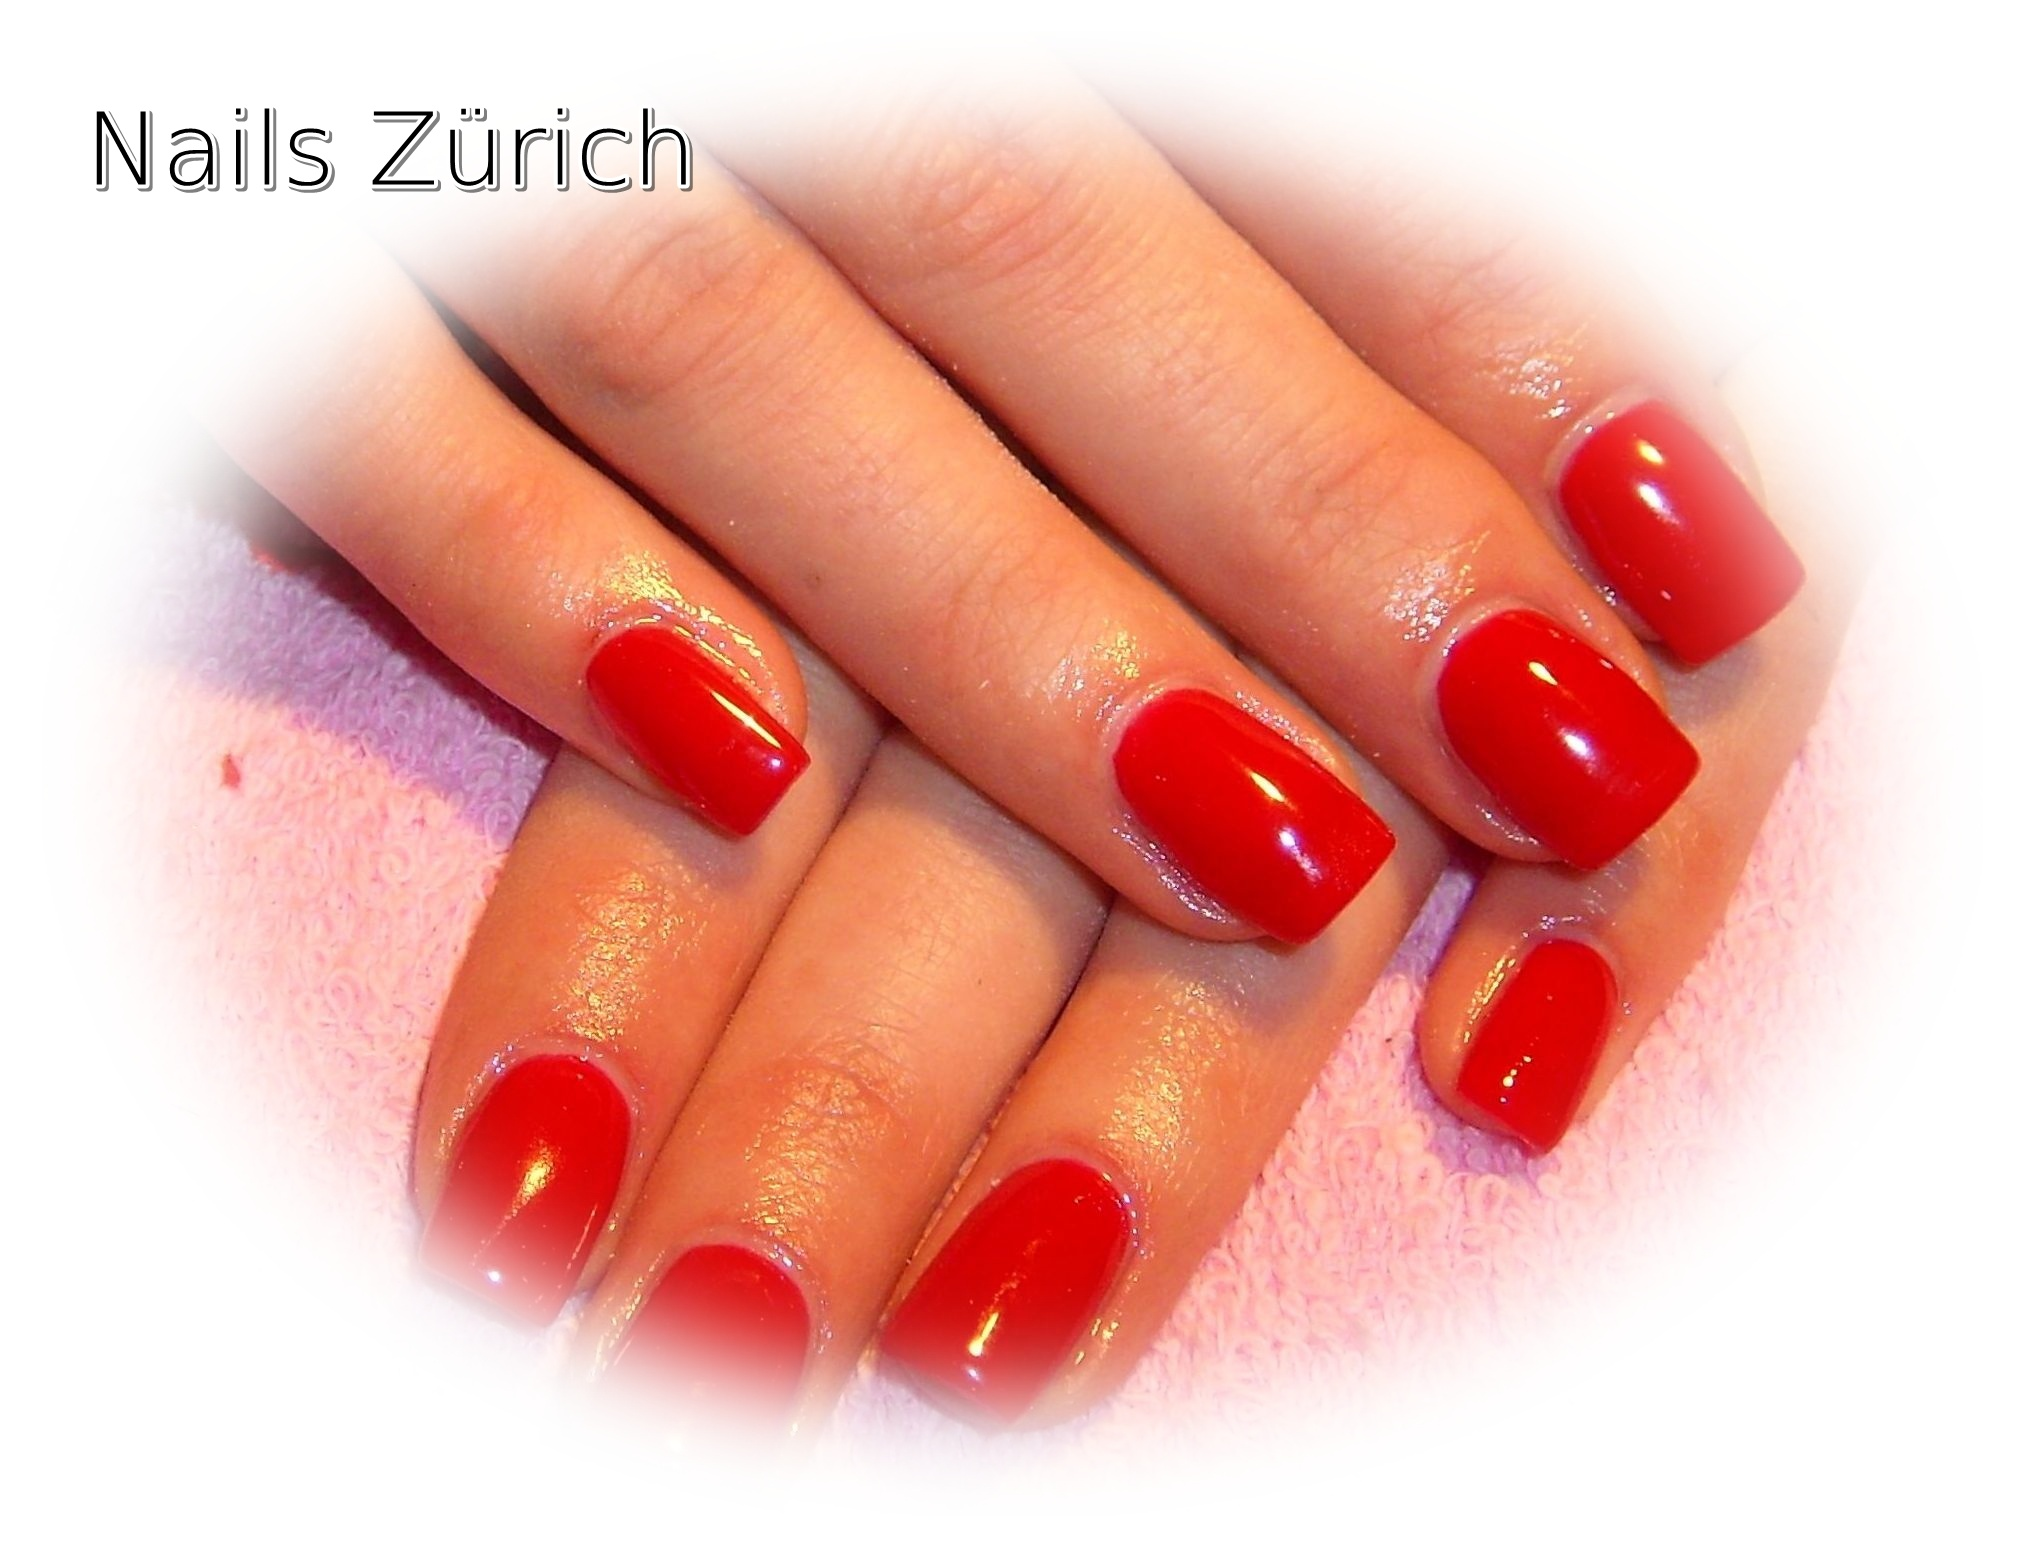 Anita nails Zürich